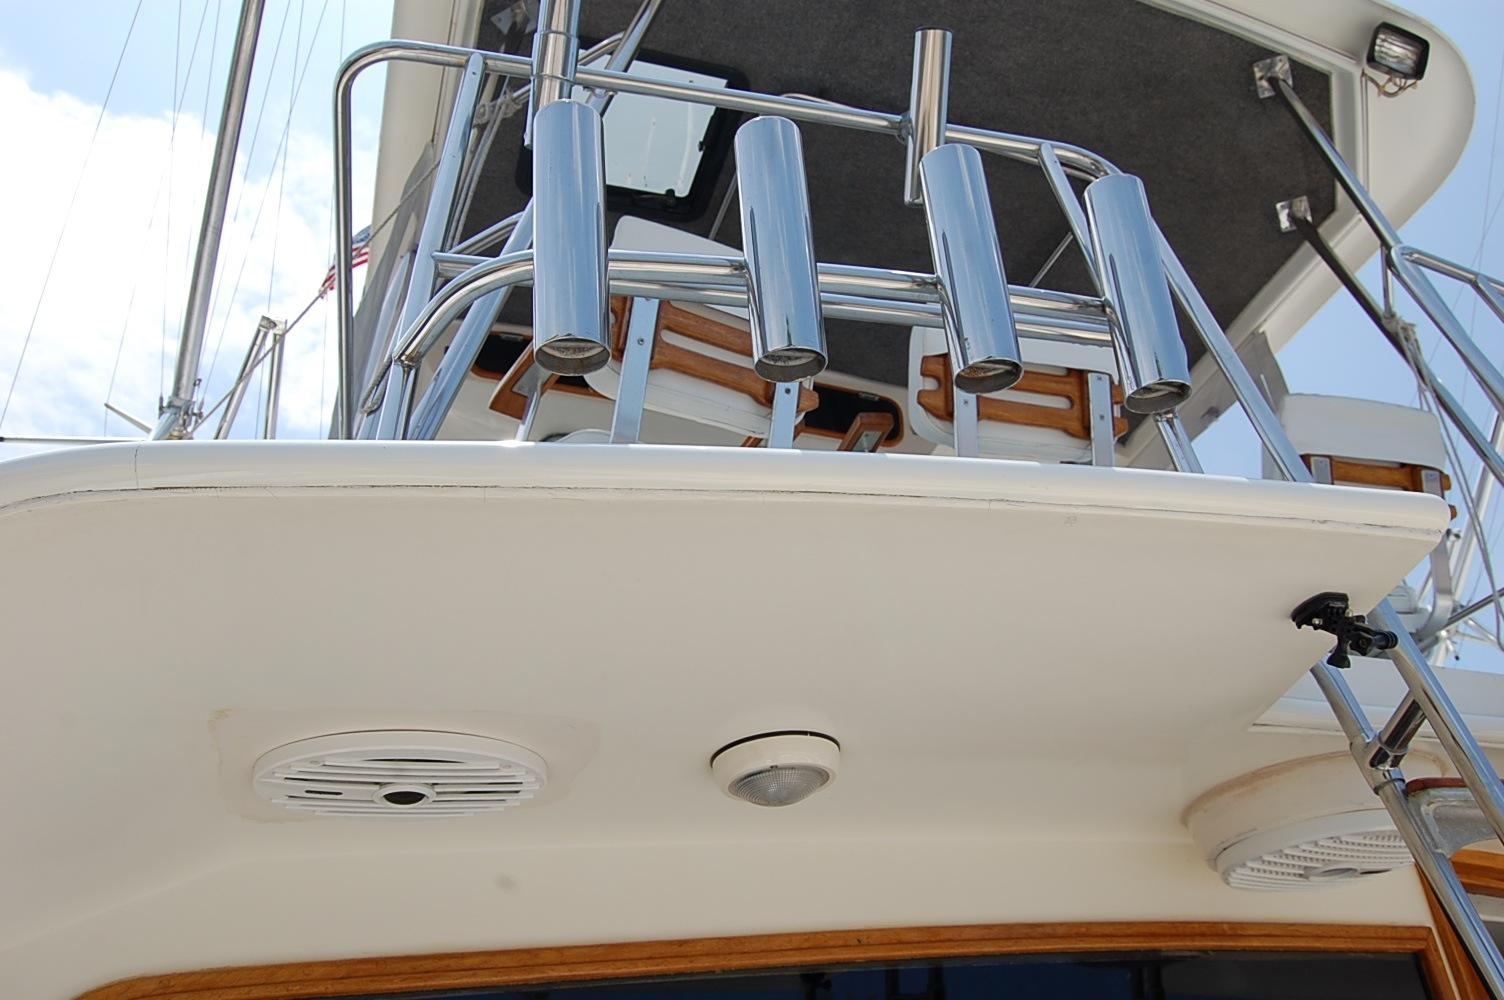 48' Ocean Yachts Super Sport+Aft wash hose station fish Door